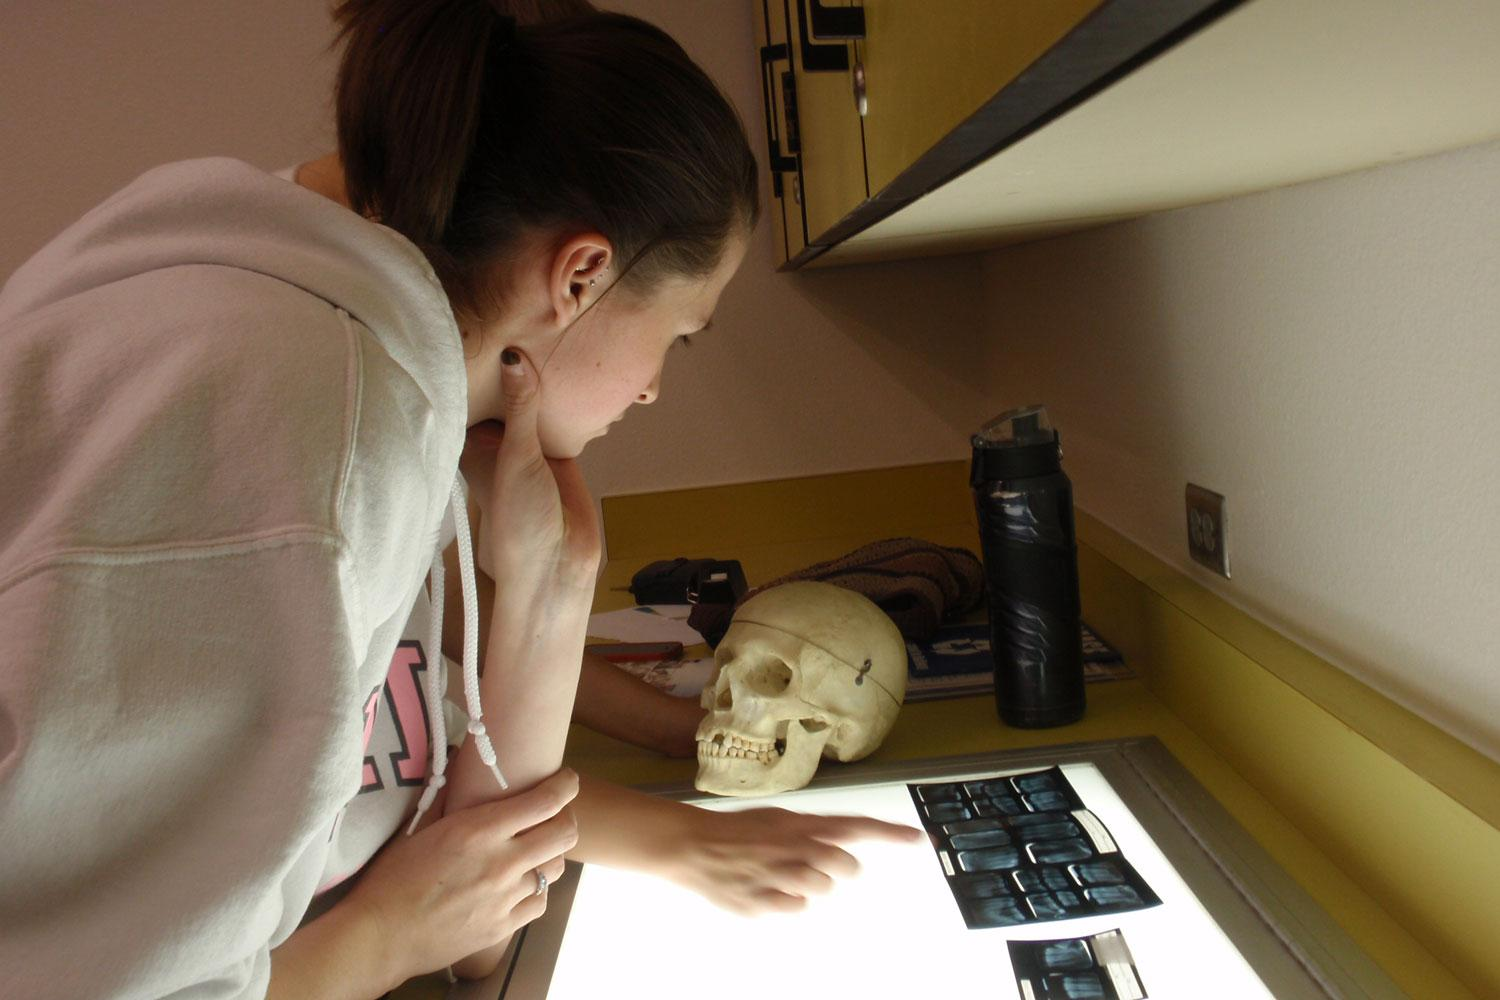 Forensic Anthropology student Nicole Arizmendi identifies a human skeleton by matching it to it's dental records.